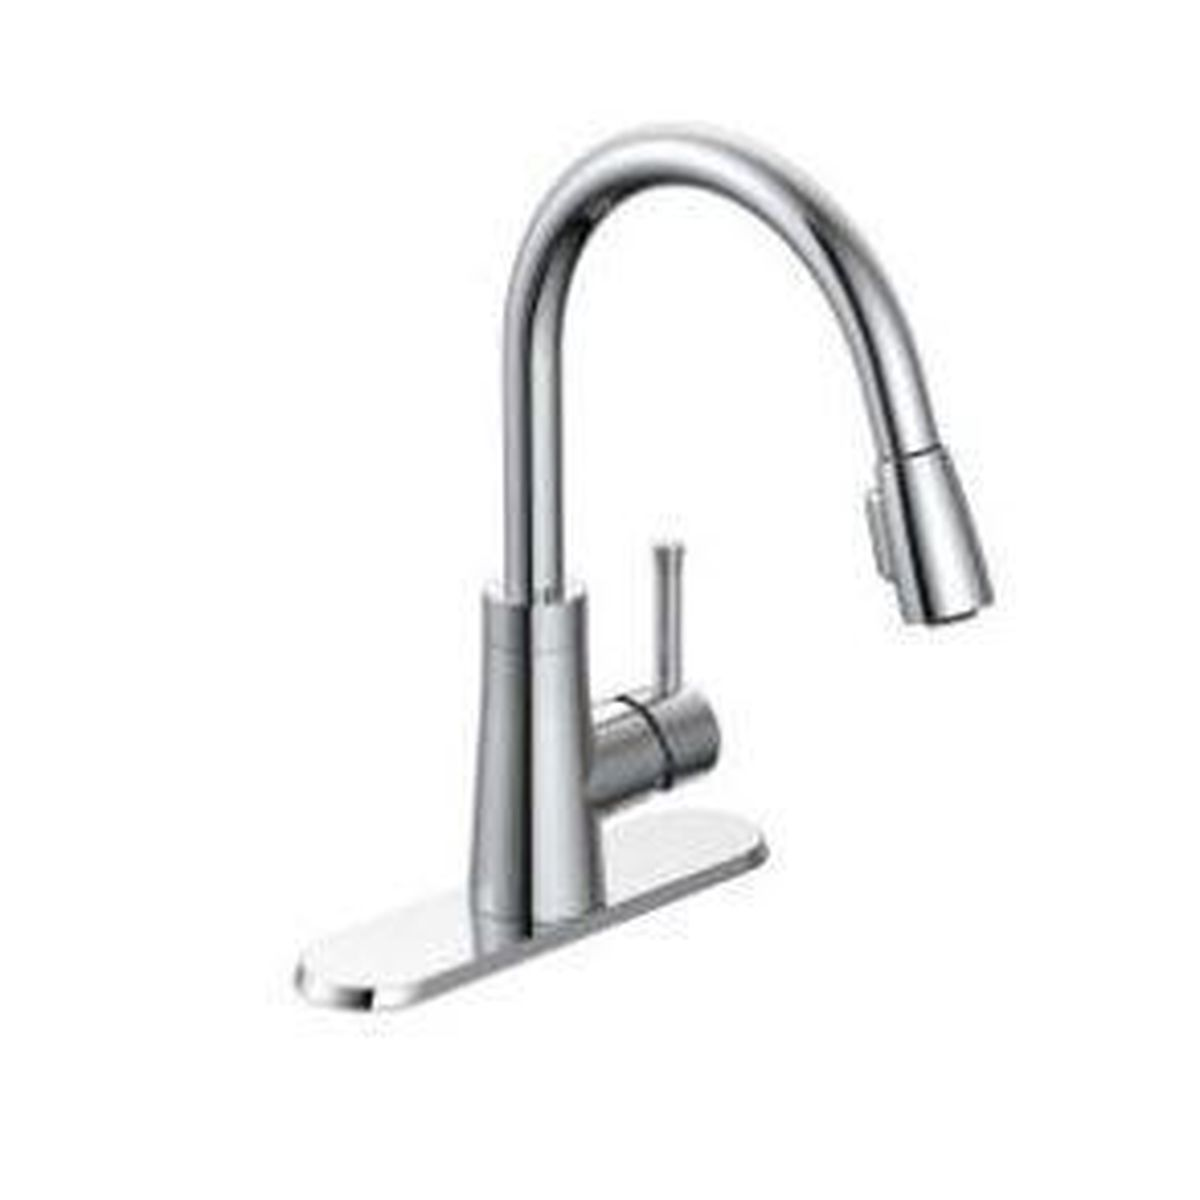 Style PD-150   Padova   Single Handle   Kitchen Faucet   Pulldown   Chome